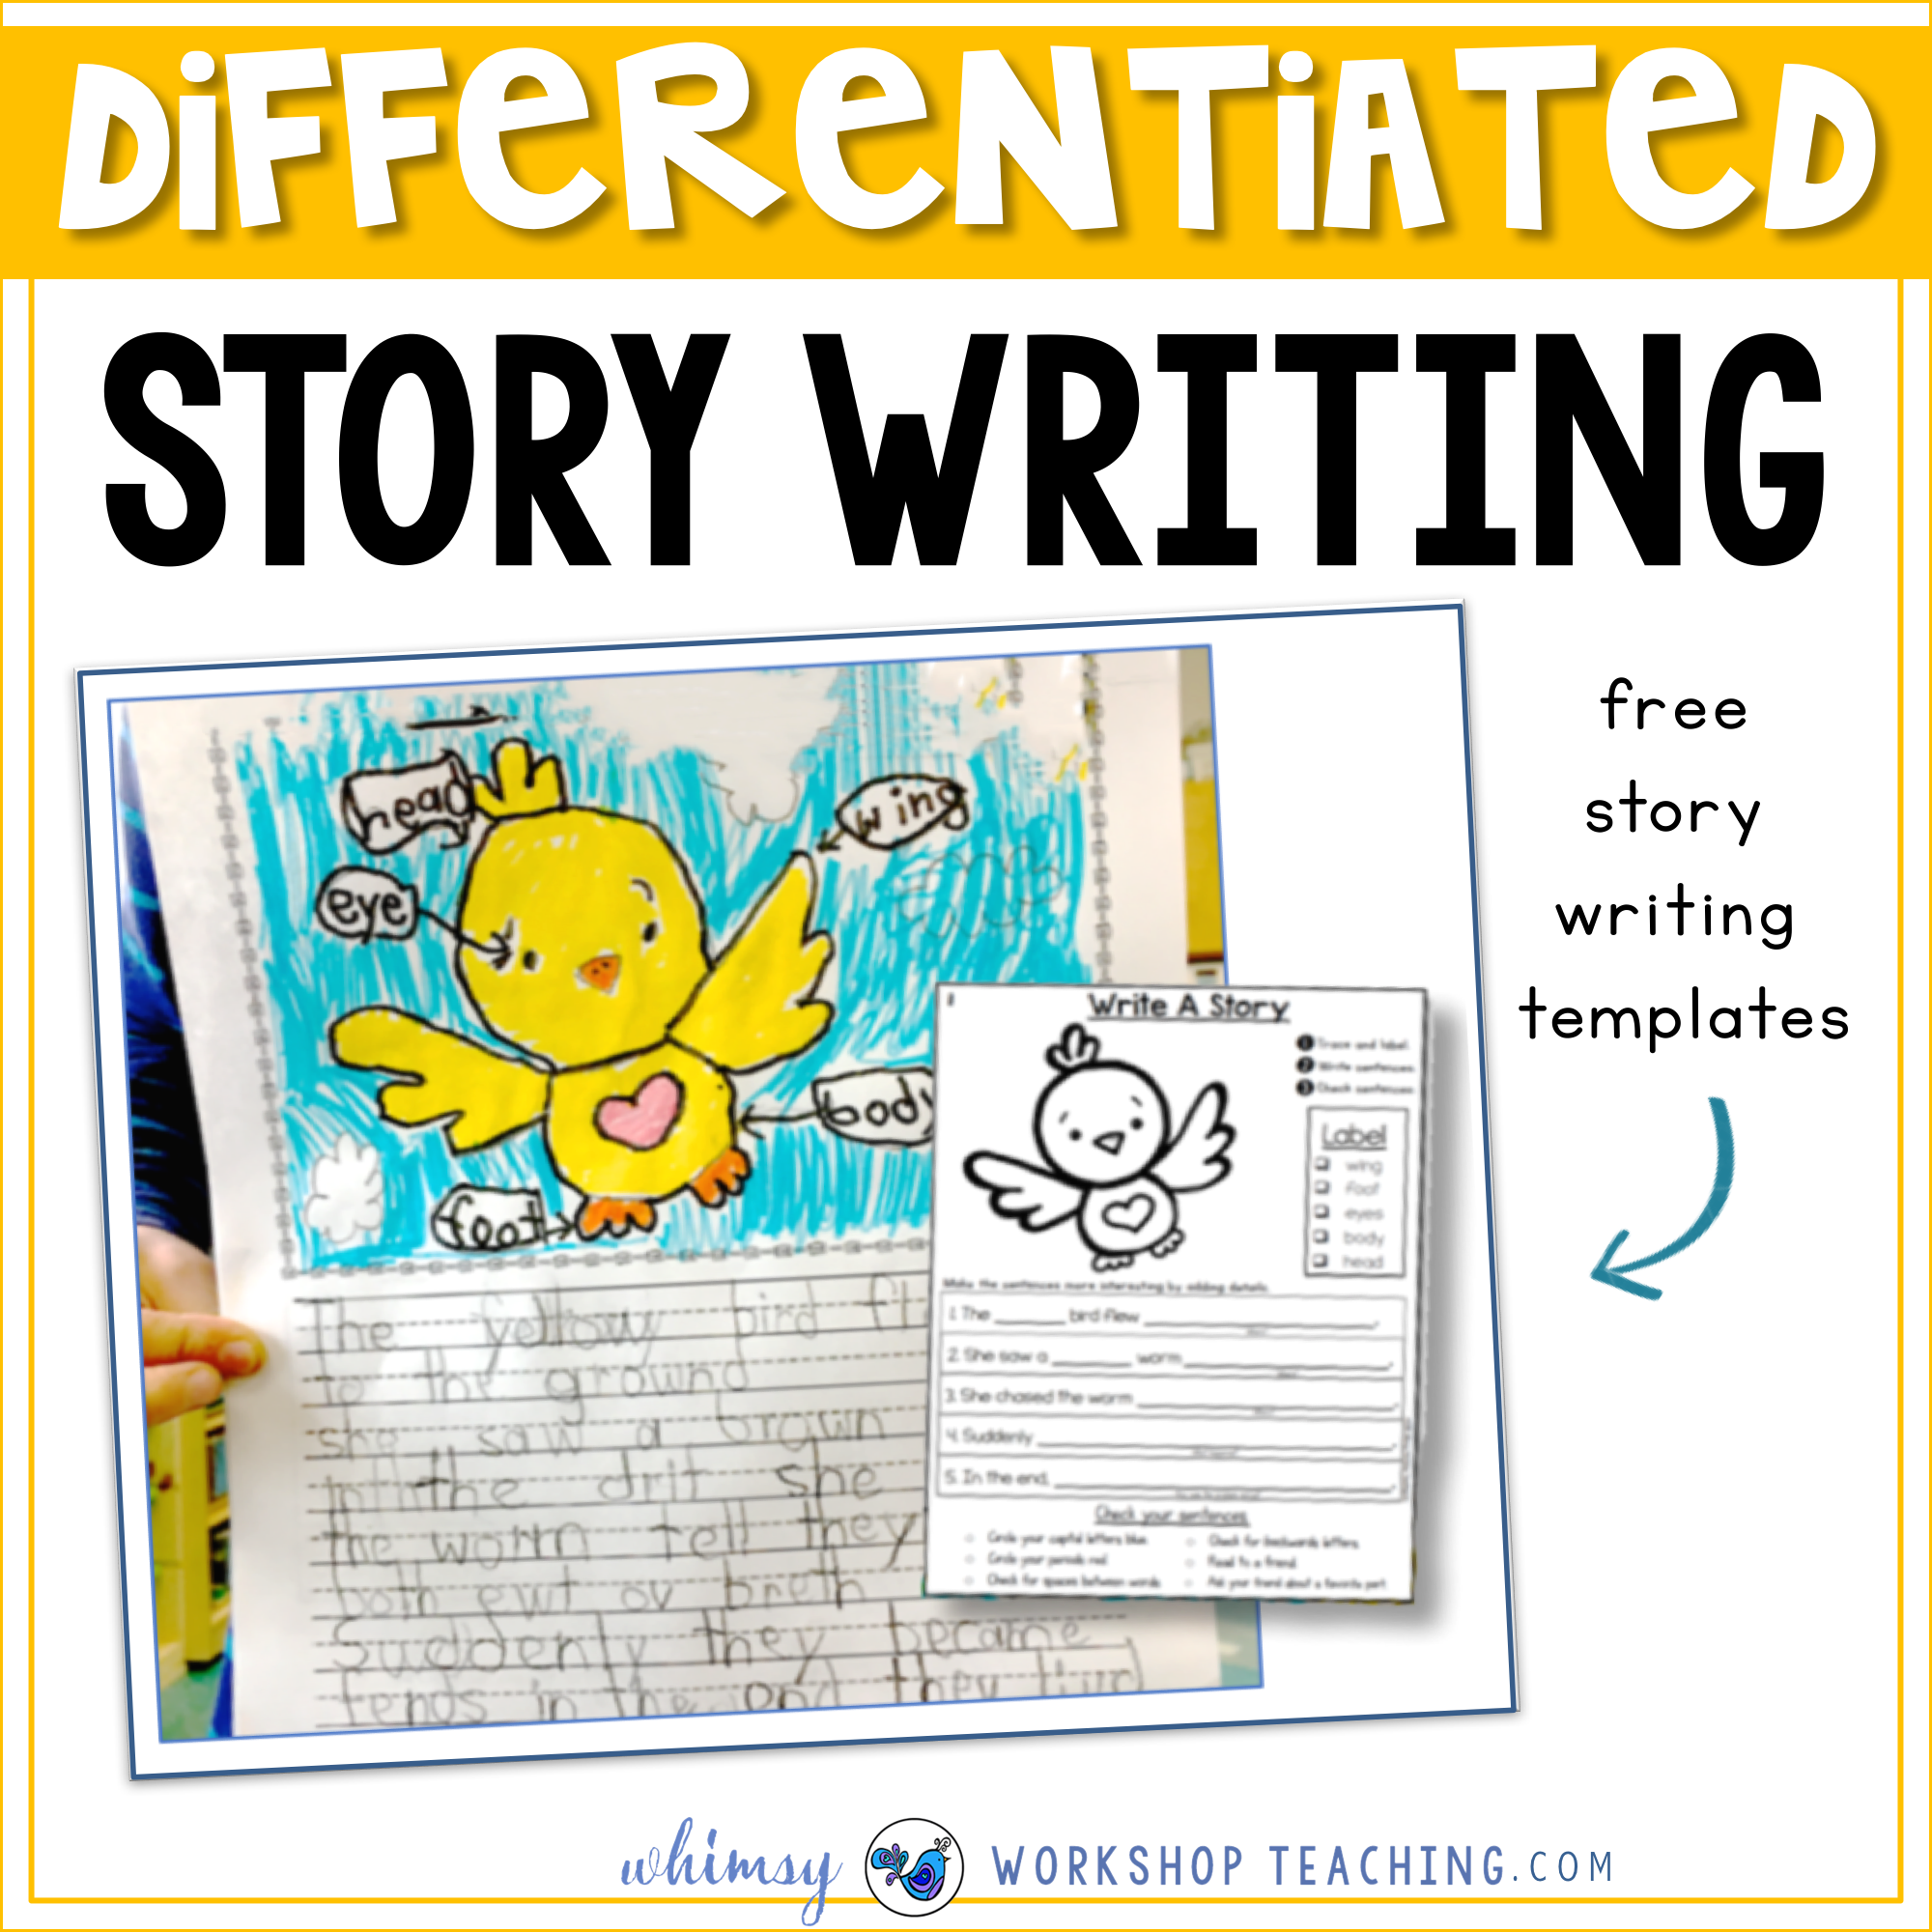 Differentiated story writing templates and ideas